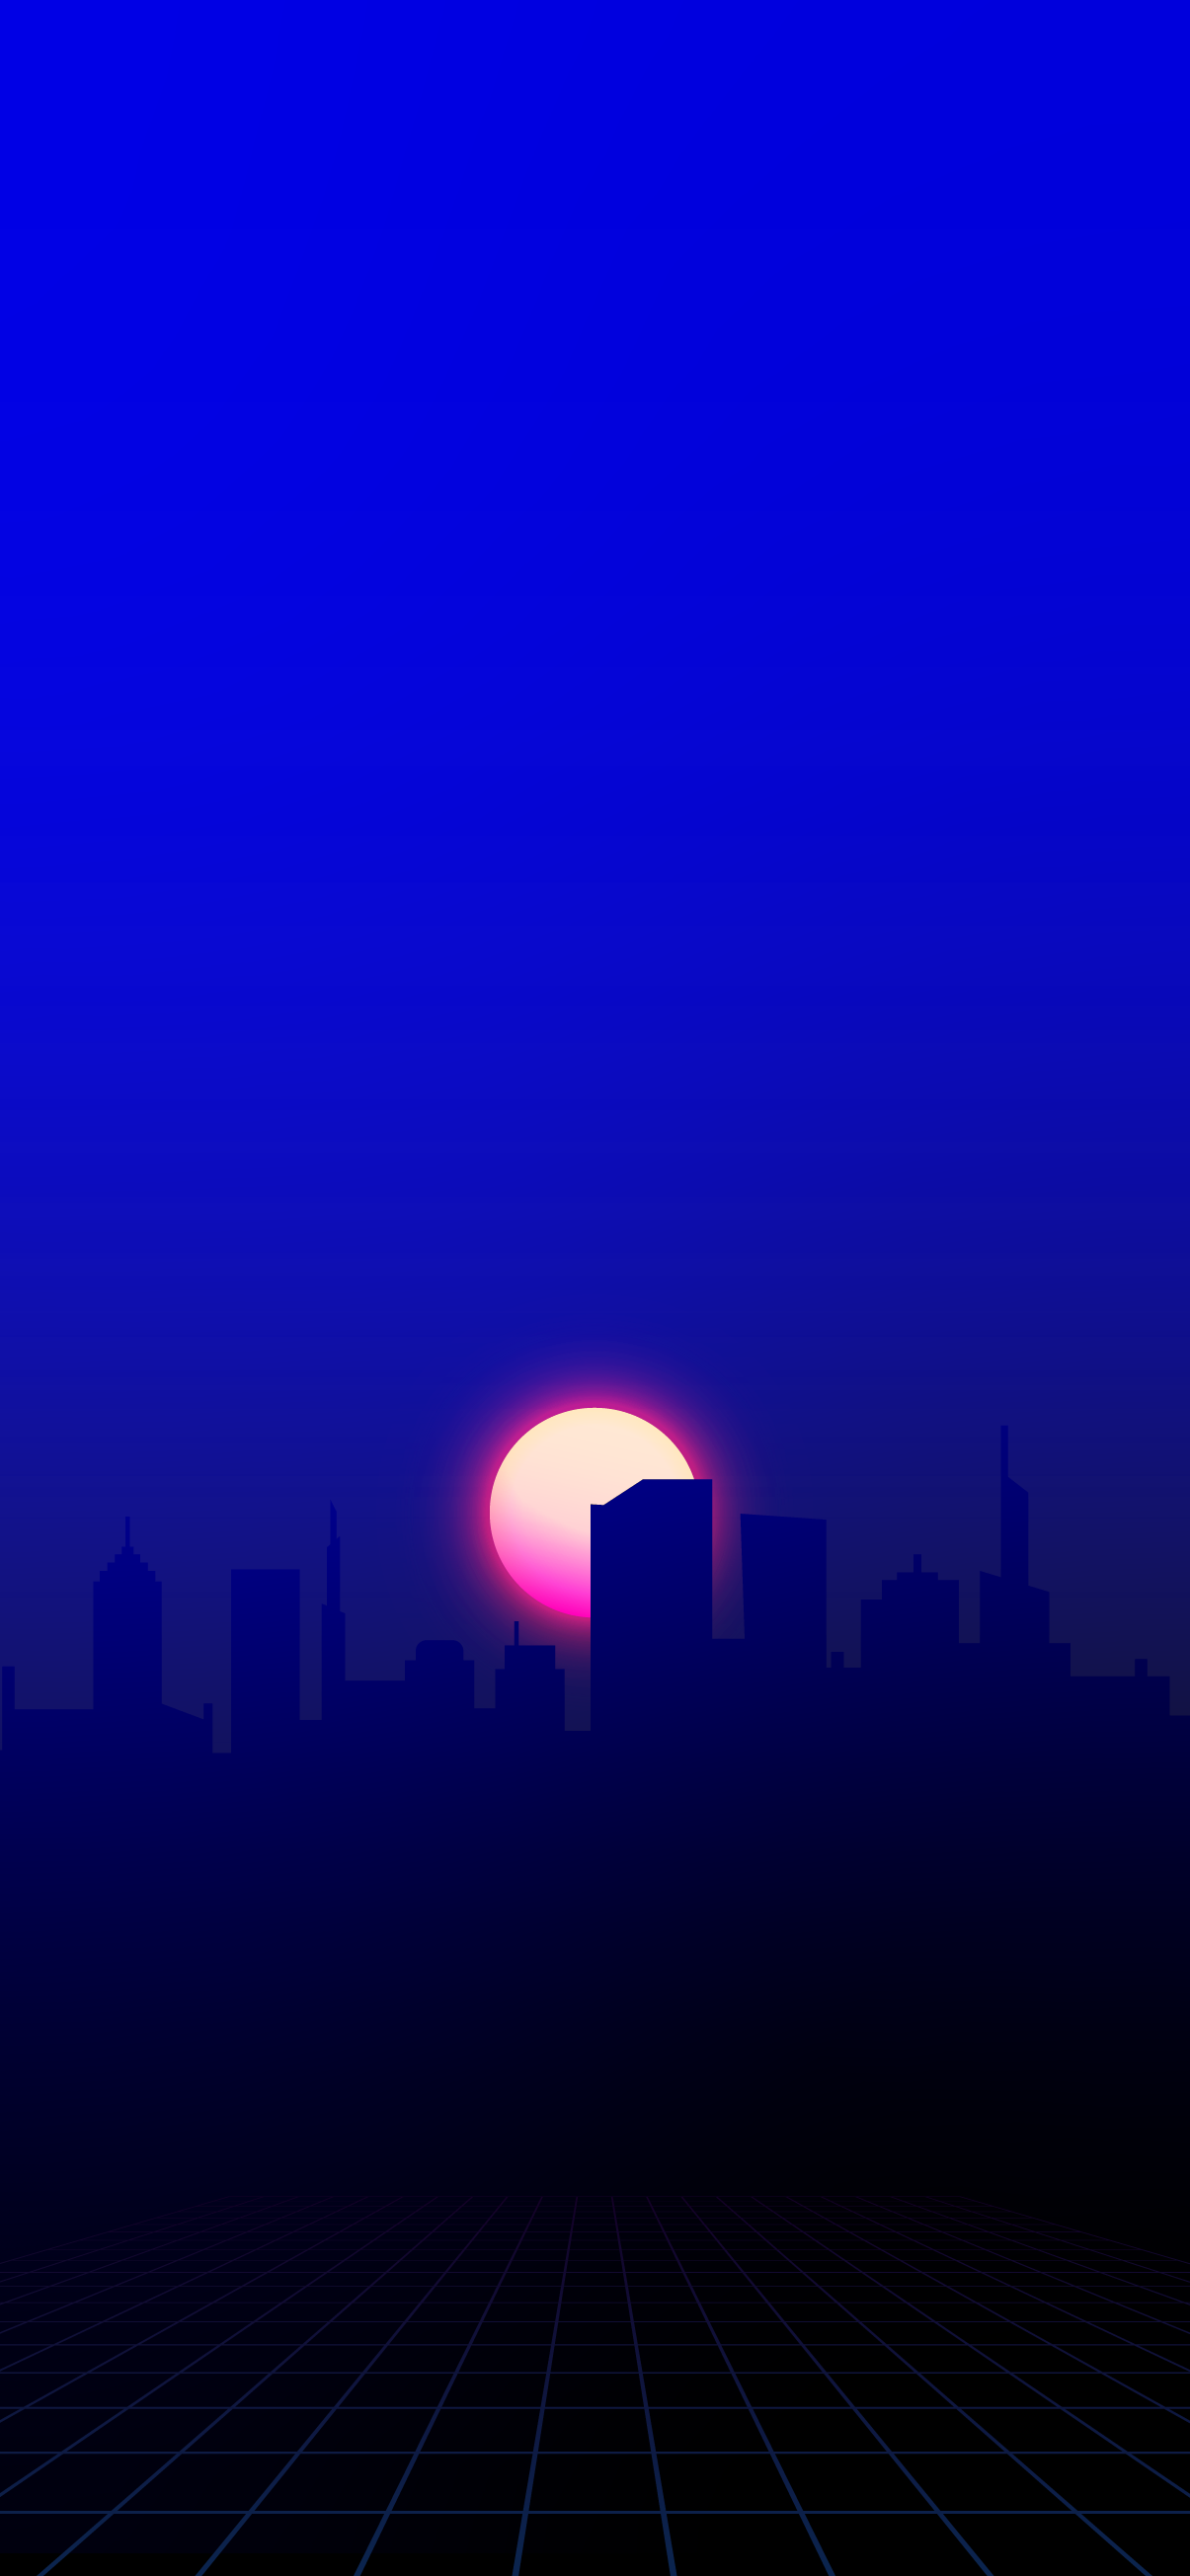 CITY SILHOUETTE WITH SUN SUNSET CYBERPUNK FUTURISTIC CITY RETROWAVE RETRO SYNTH SYNTHWAVE SYNTH-WAVE